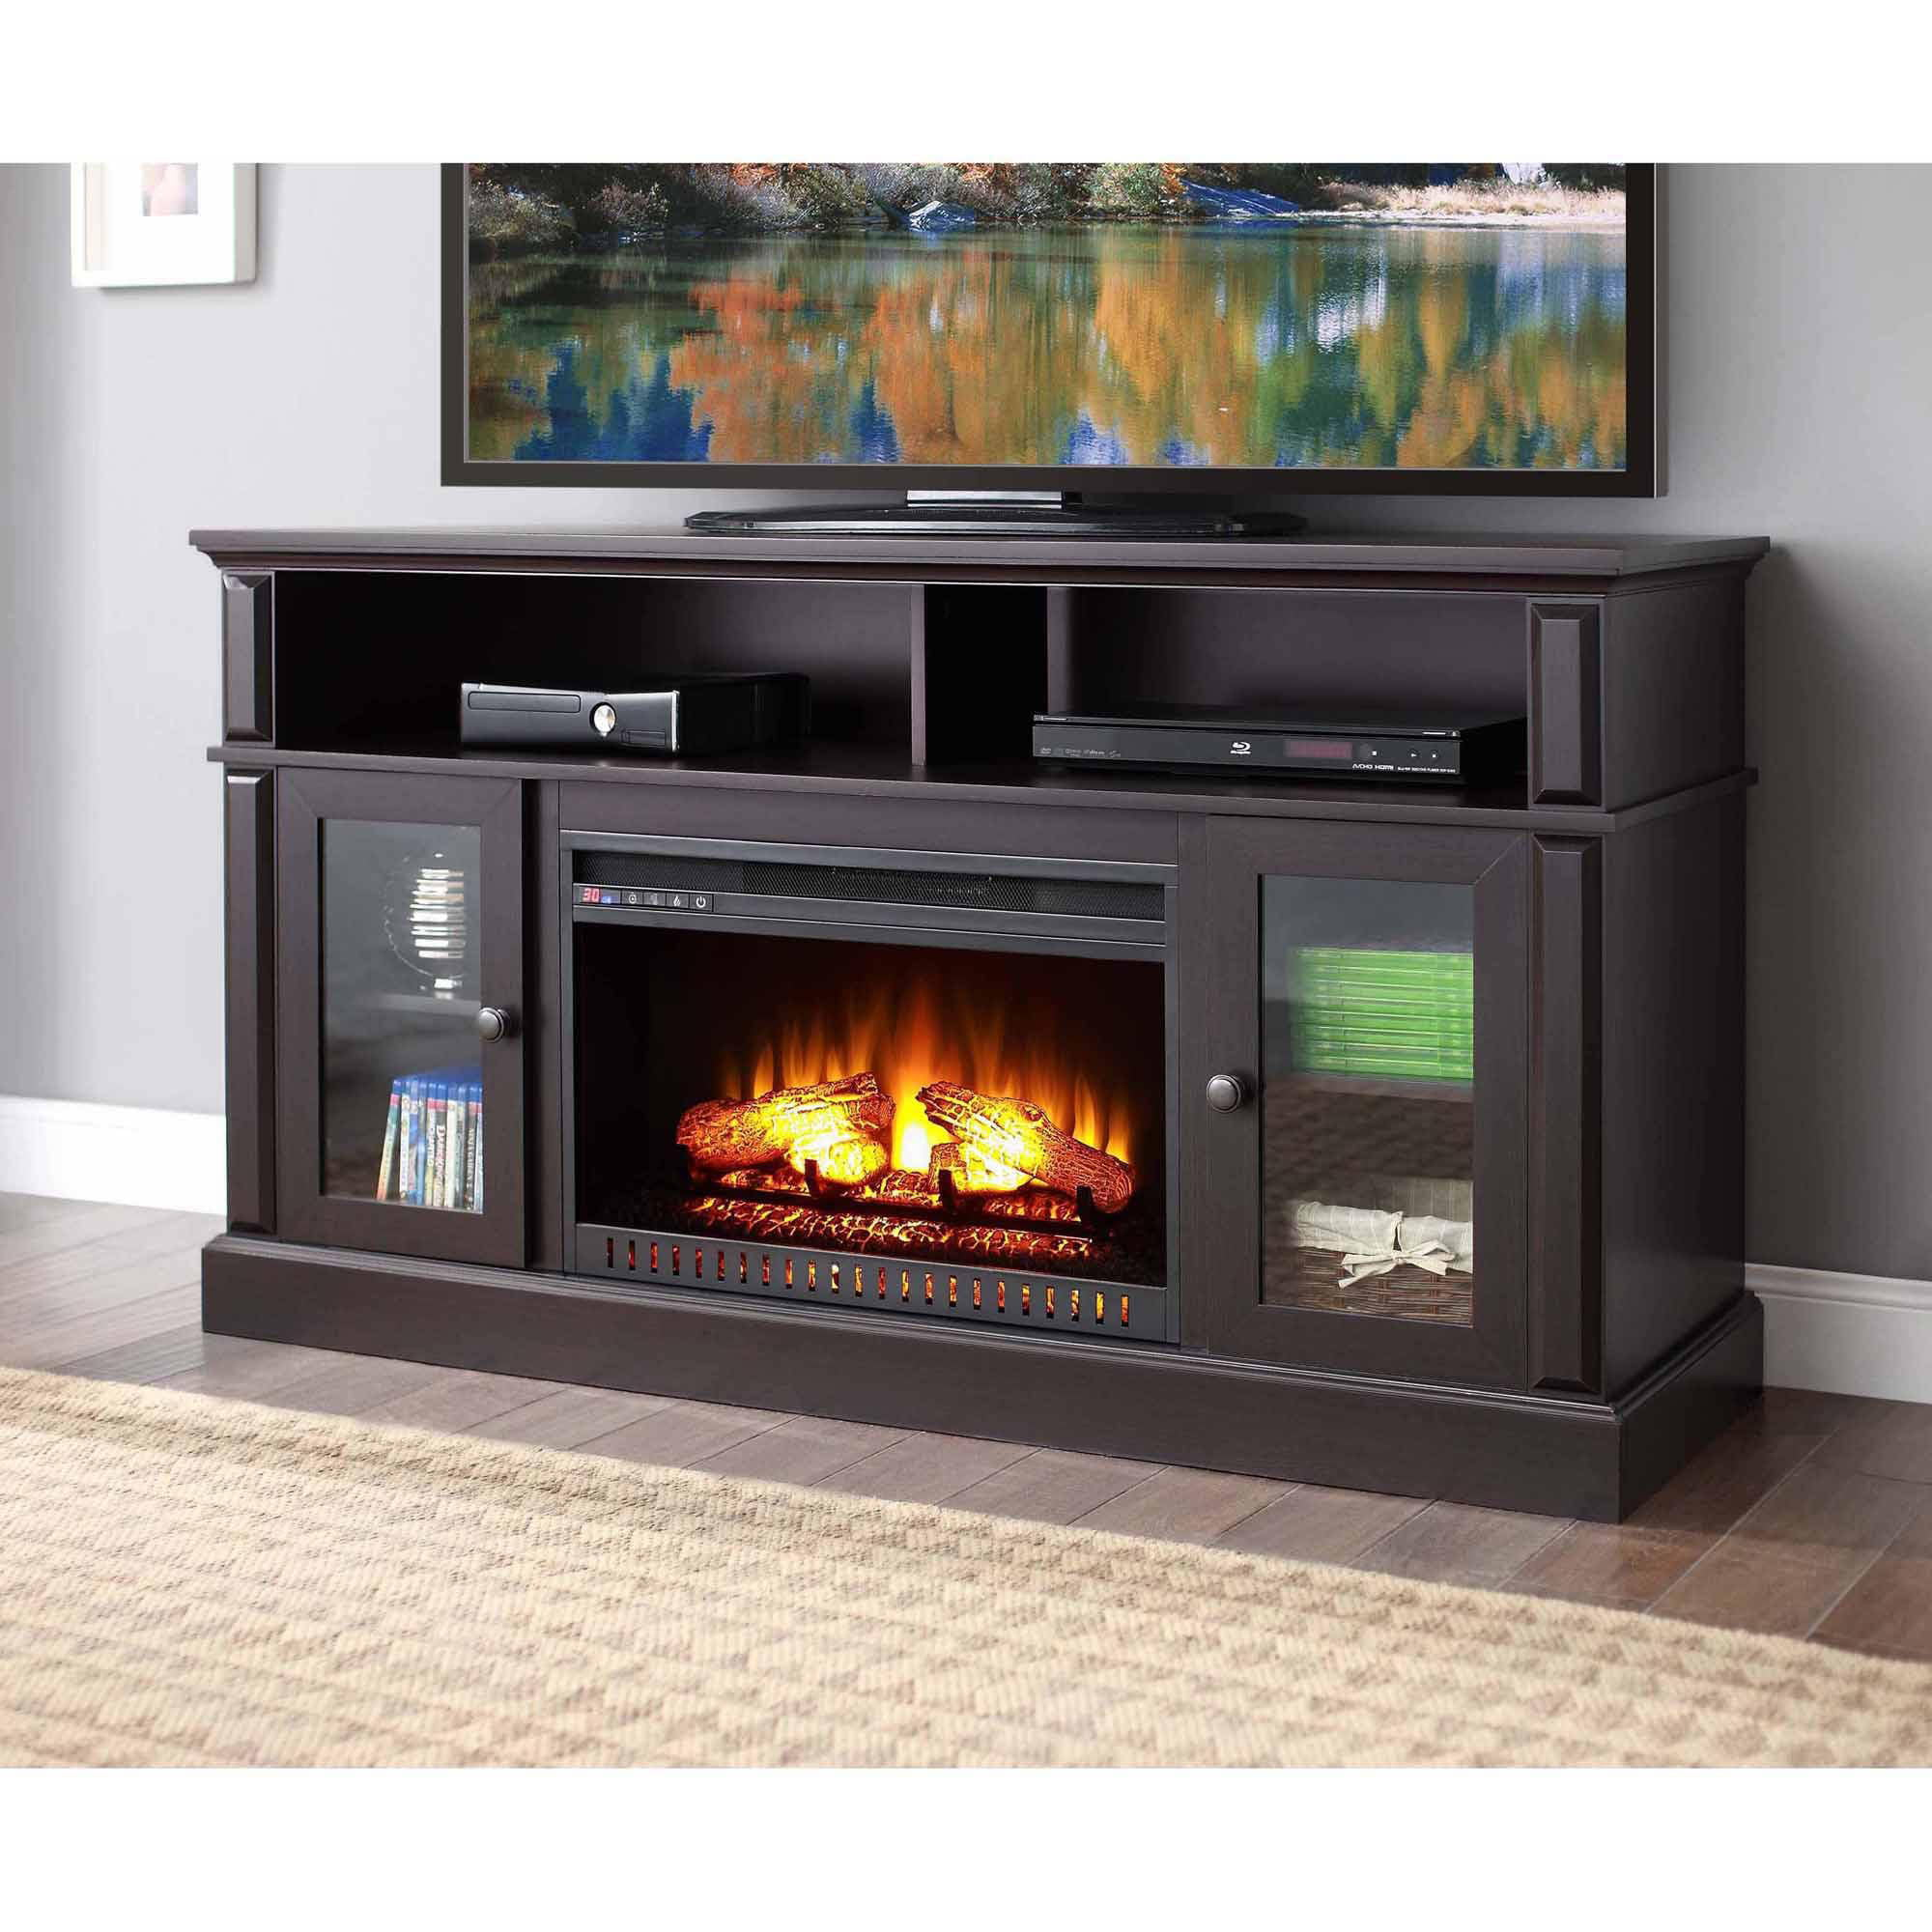 Farmington Electric Fireplace TV Console for TVs, Multiple Colors ...